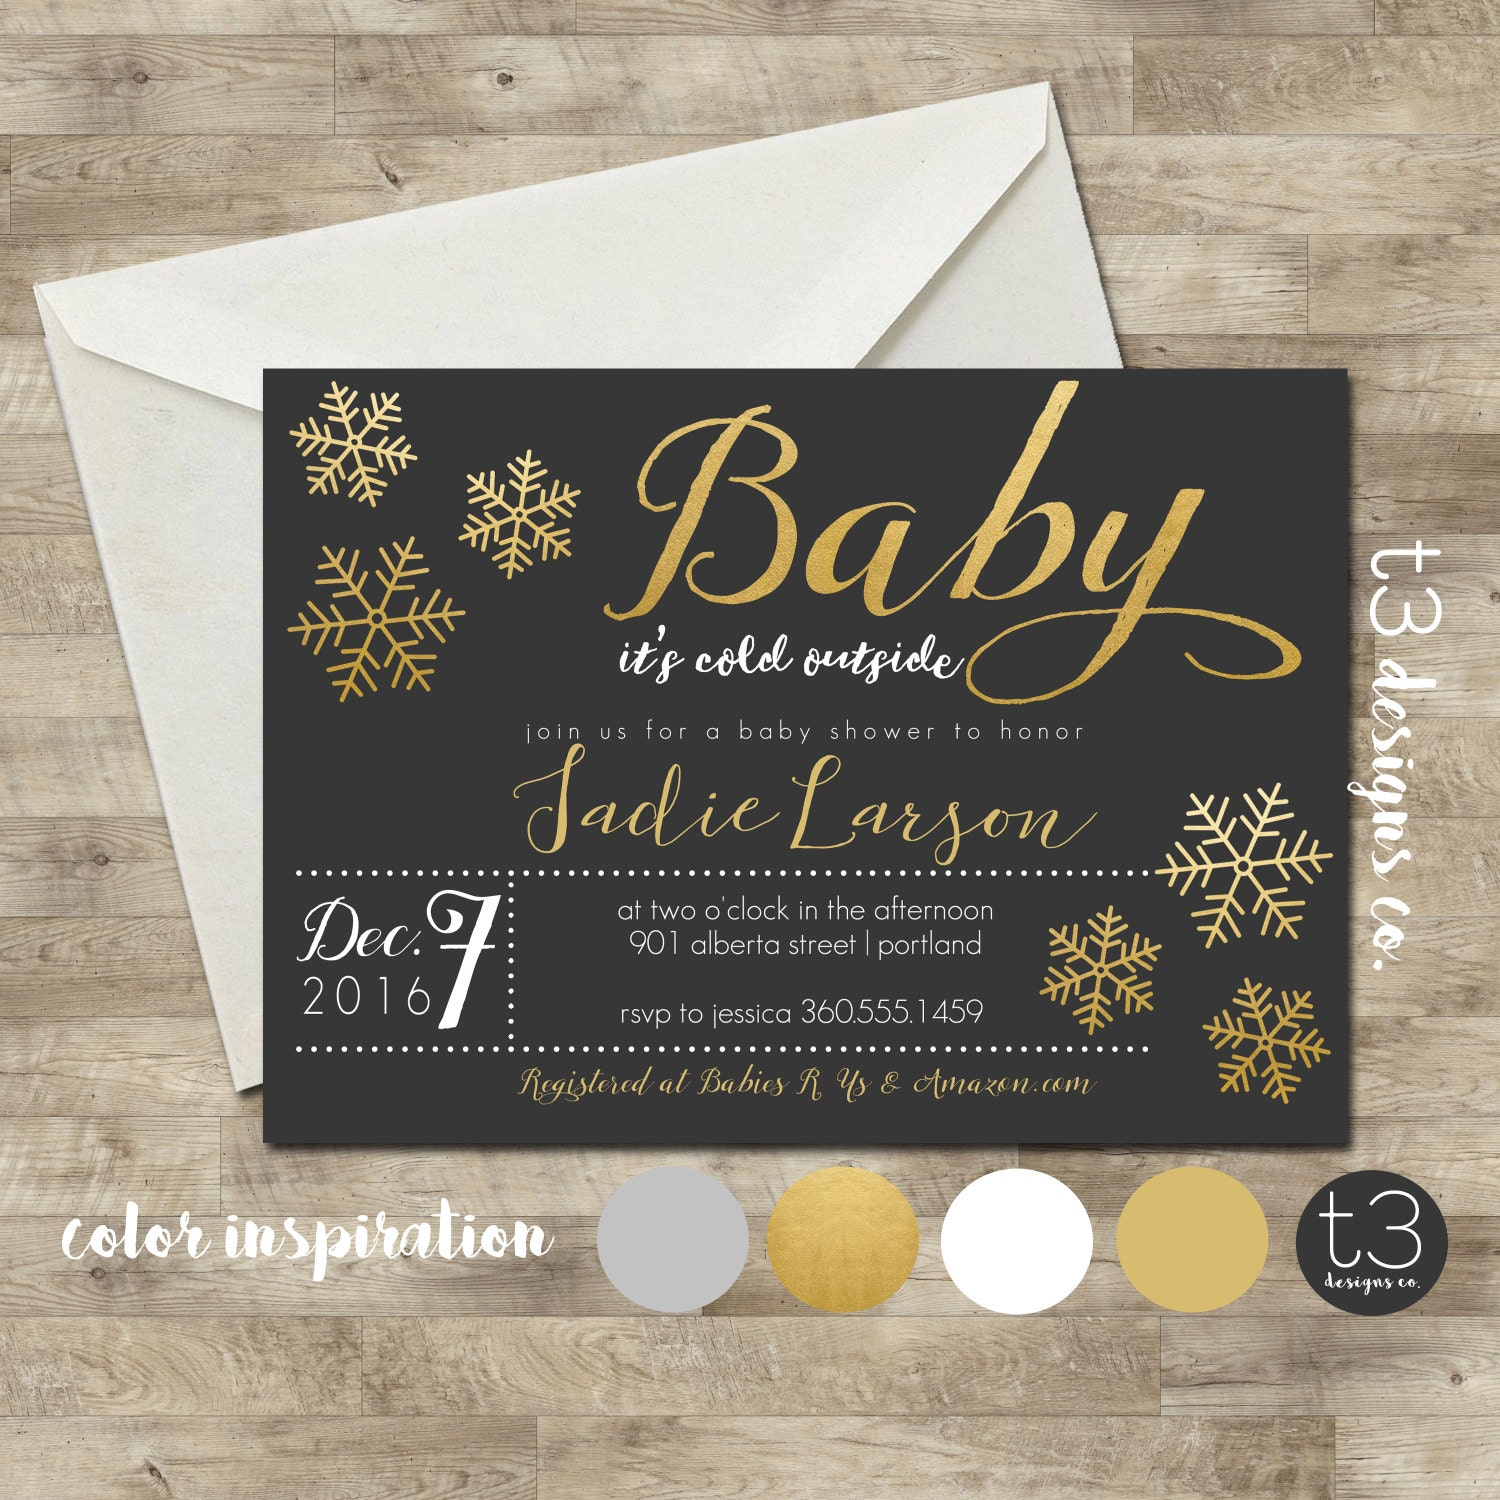 Snowflake Baby Shower Invitation, Winter Baby Shower Invitation, Snowflake  Invitation, Gold Winter Baby Shower, Winter Wonderland Baby